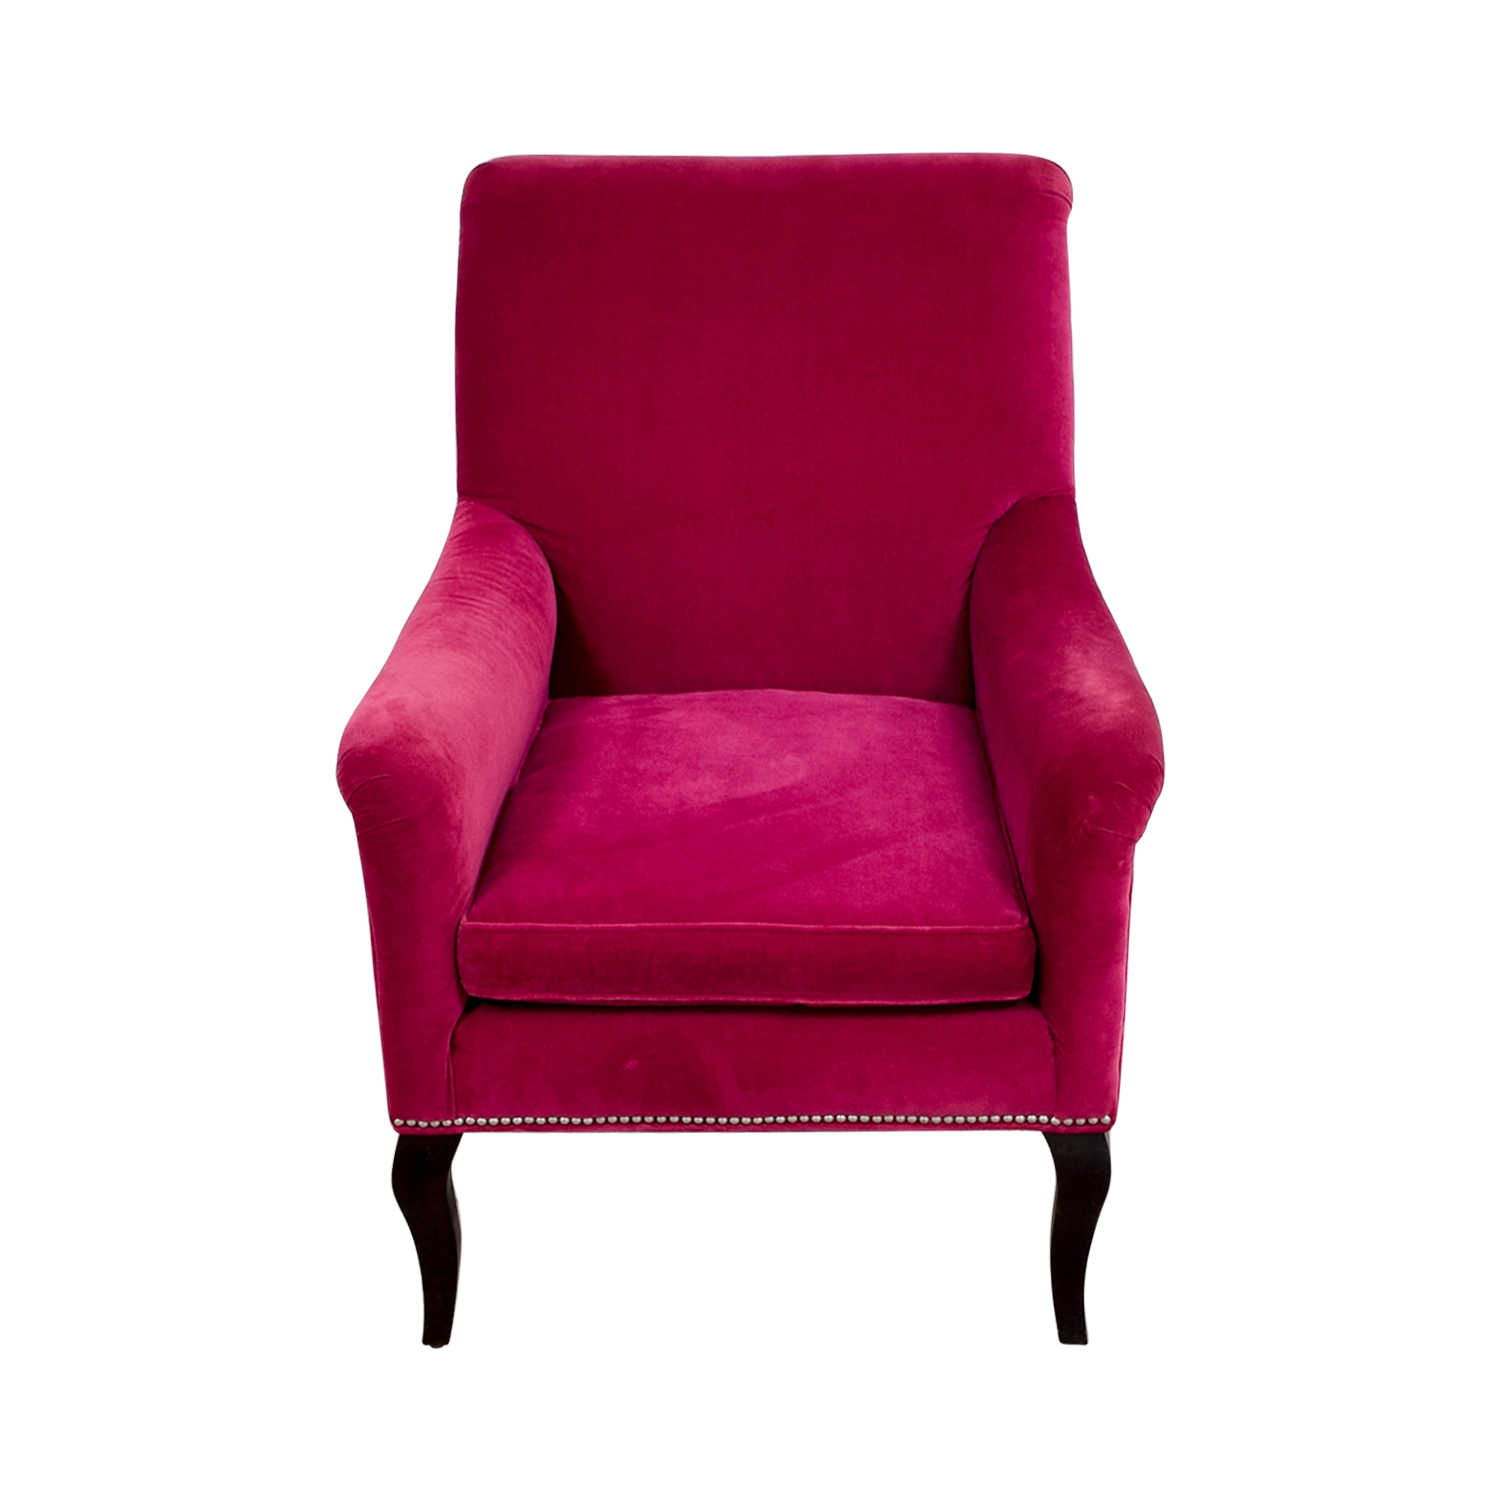 Purple Velvet Chair Chairs Amp Seating